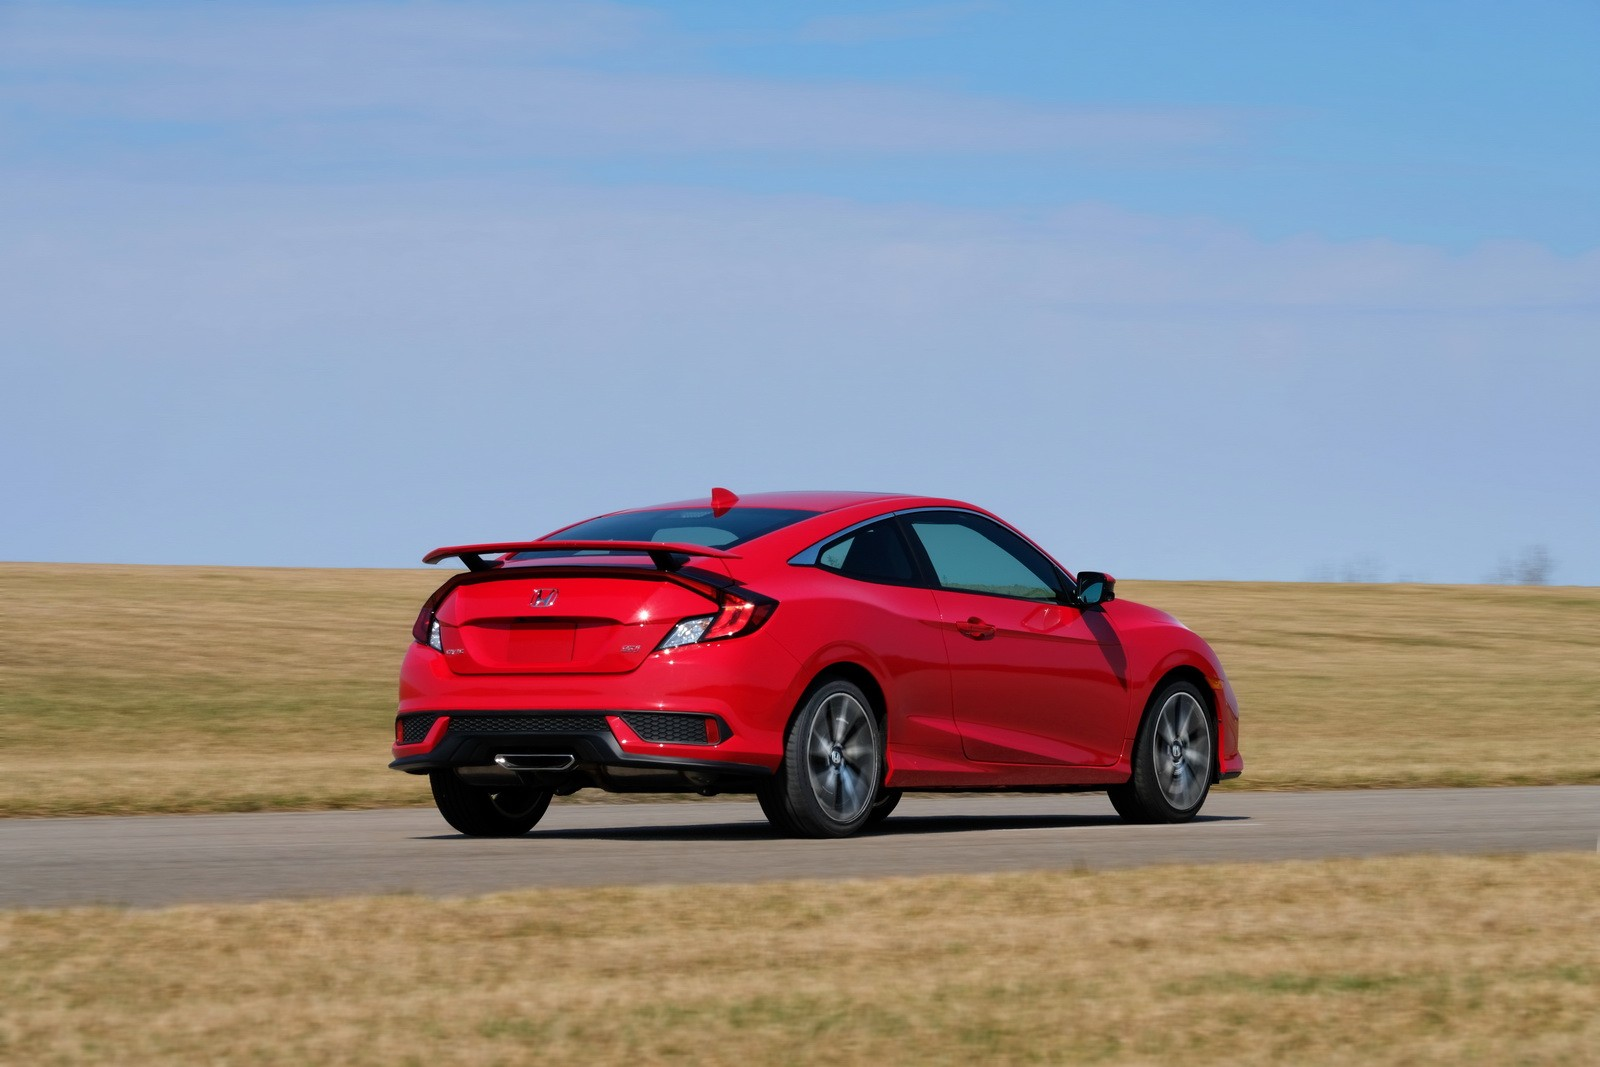 2017 honda civic si plugs the gap with 24 775 price tag for 2017 honda civic cost